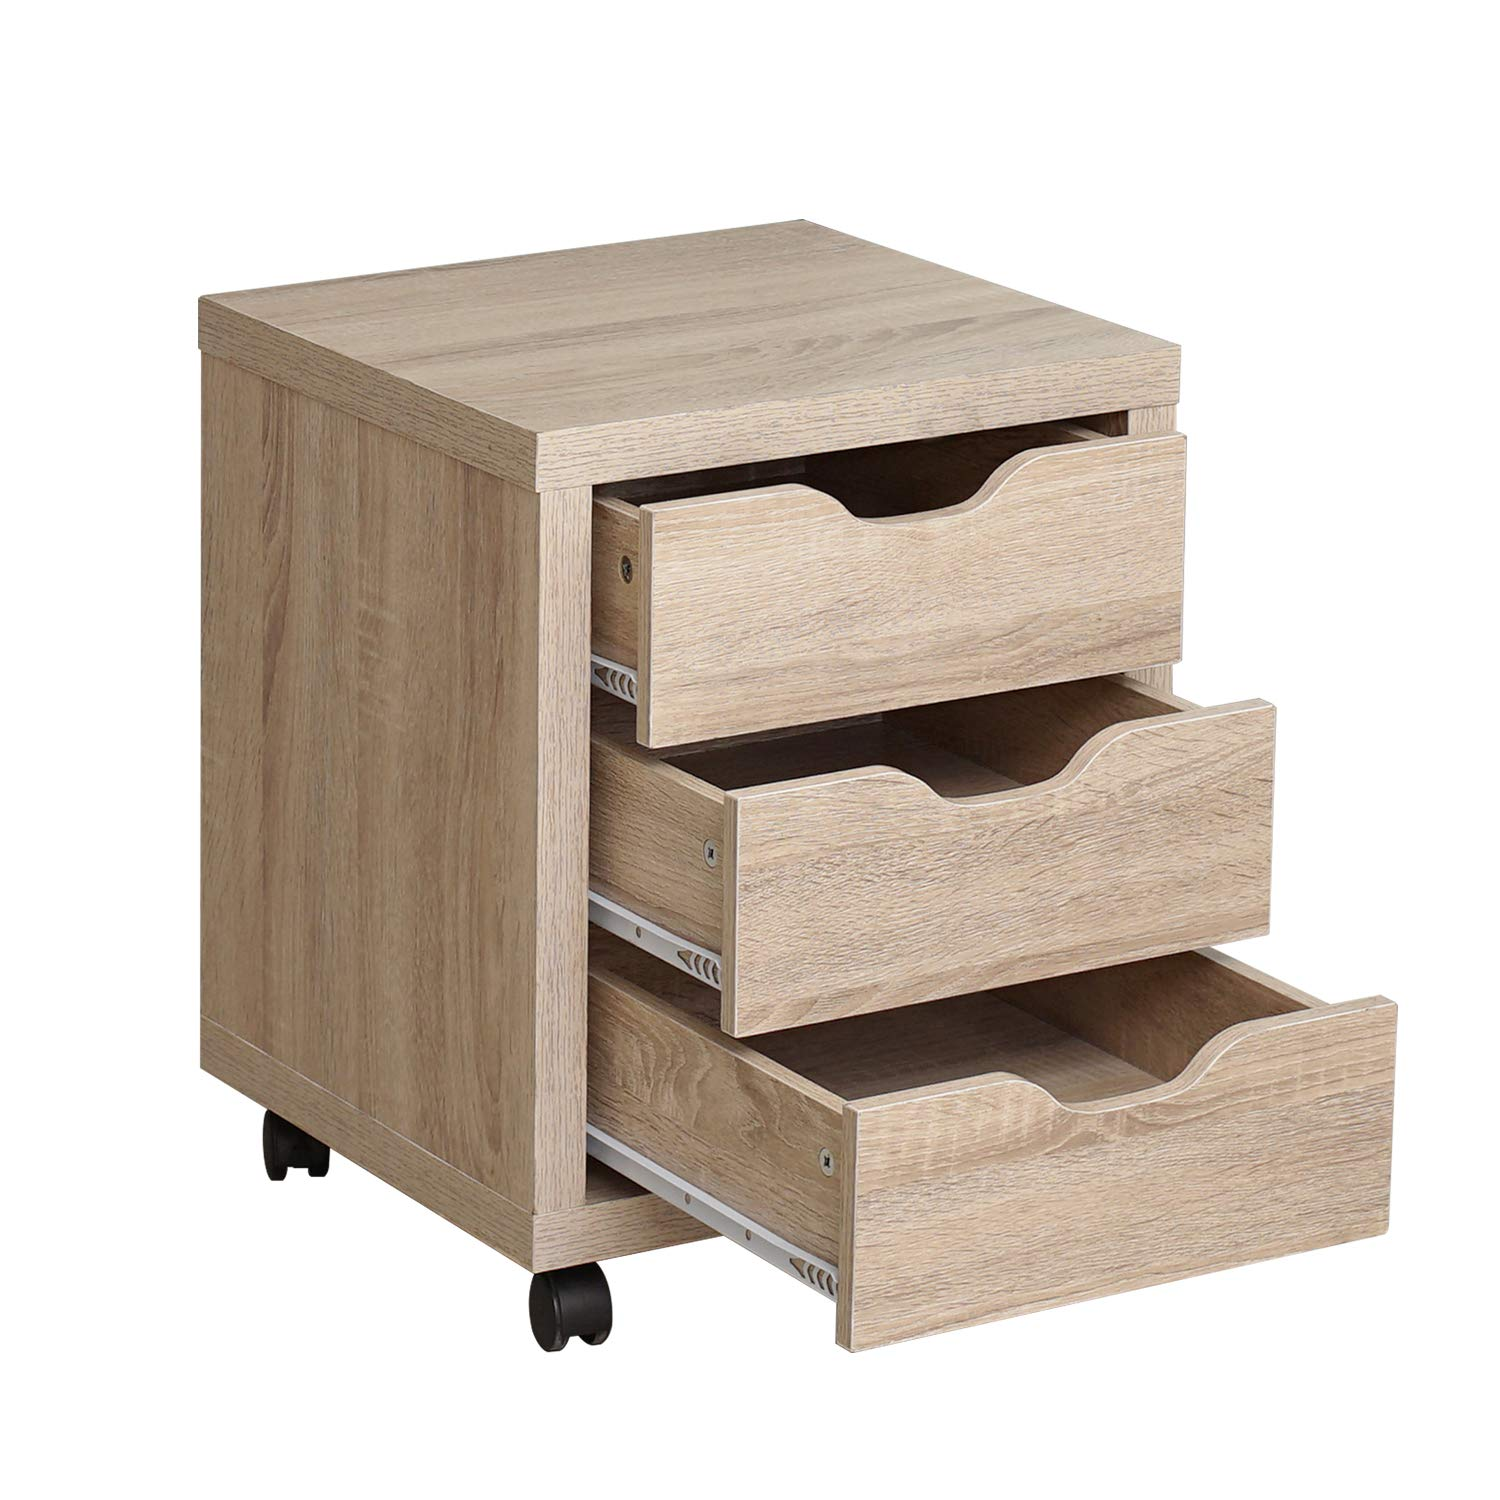 DlandHome Storage Cabinet, Vertical Lateral File Cabinet W/ 3 Drawers & Wheels, Wooden Bedroom Side Organizer for Home Office, LHGZ204-M Maple, 1 Pack by DlandHome (Image #7)